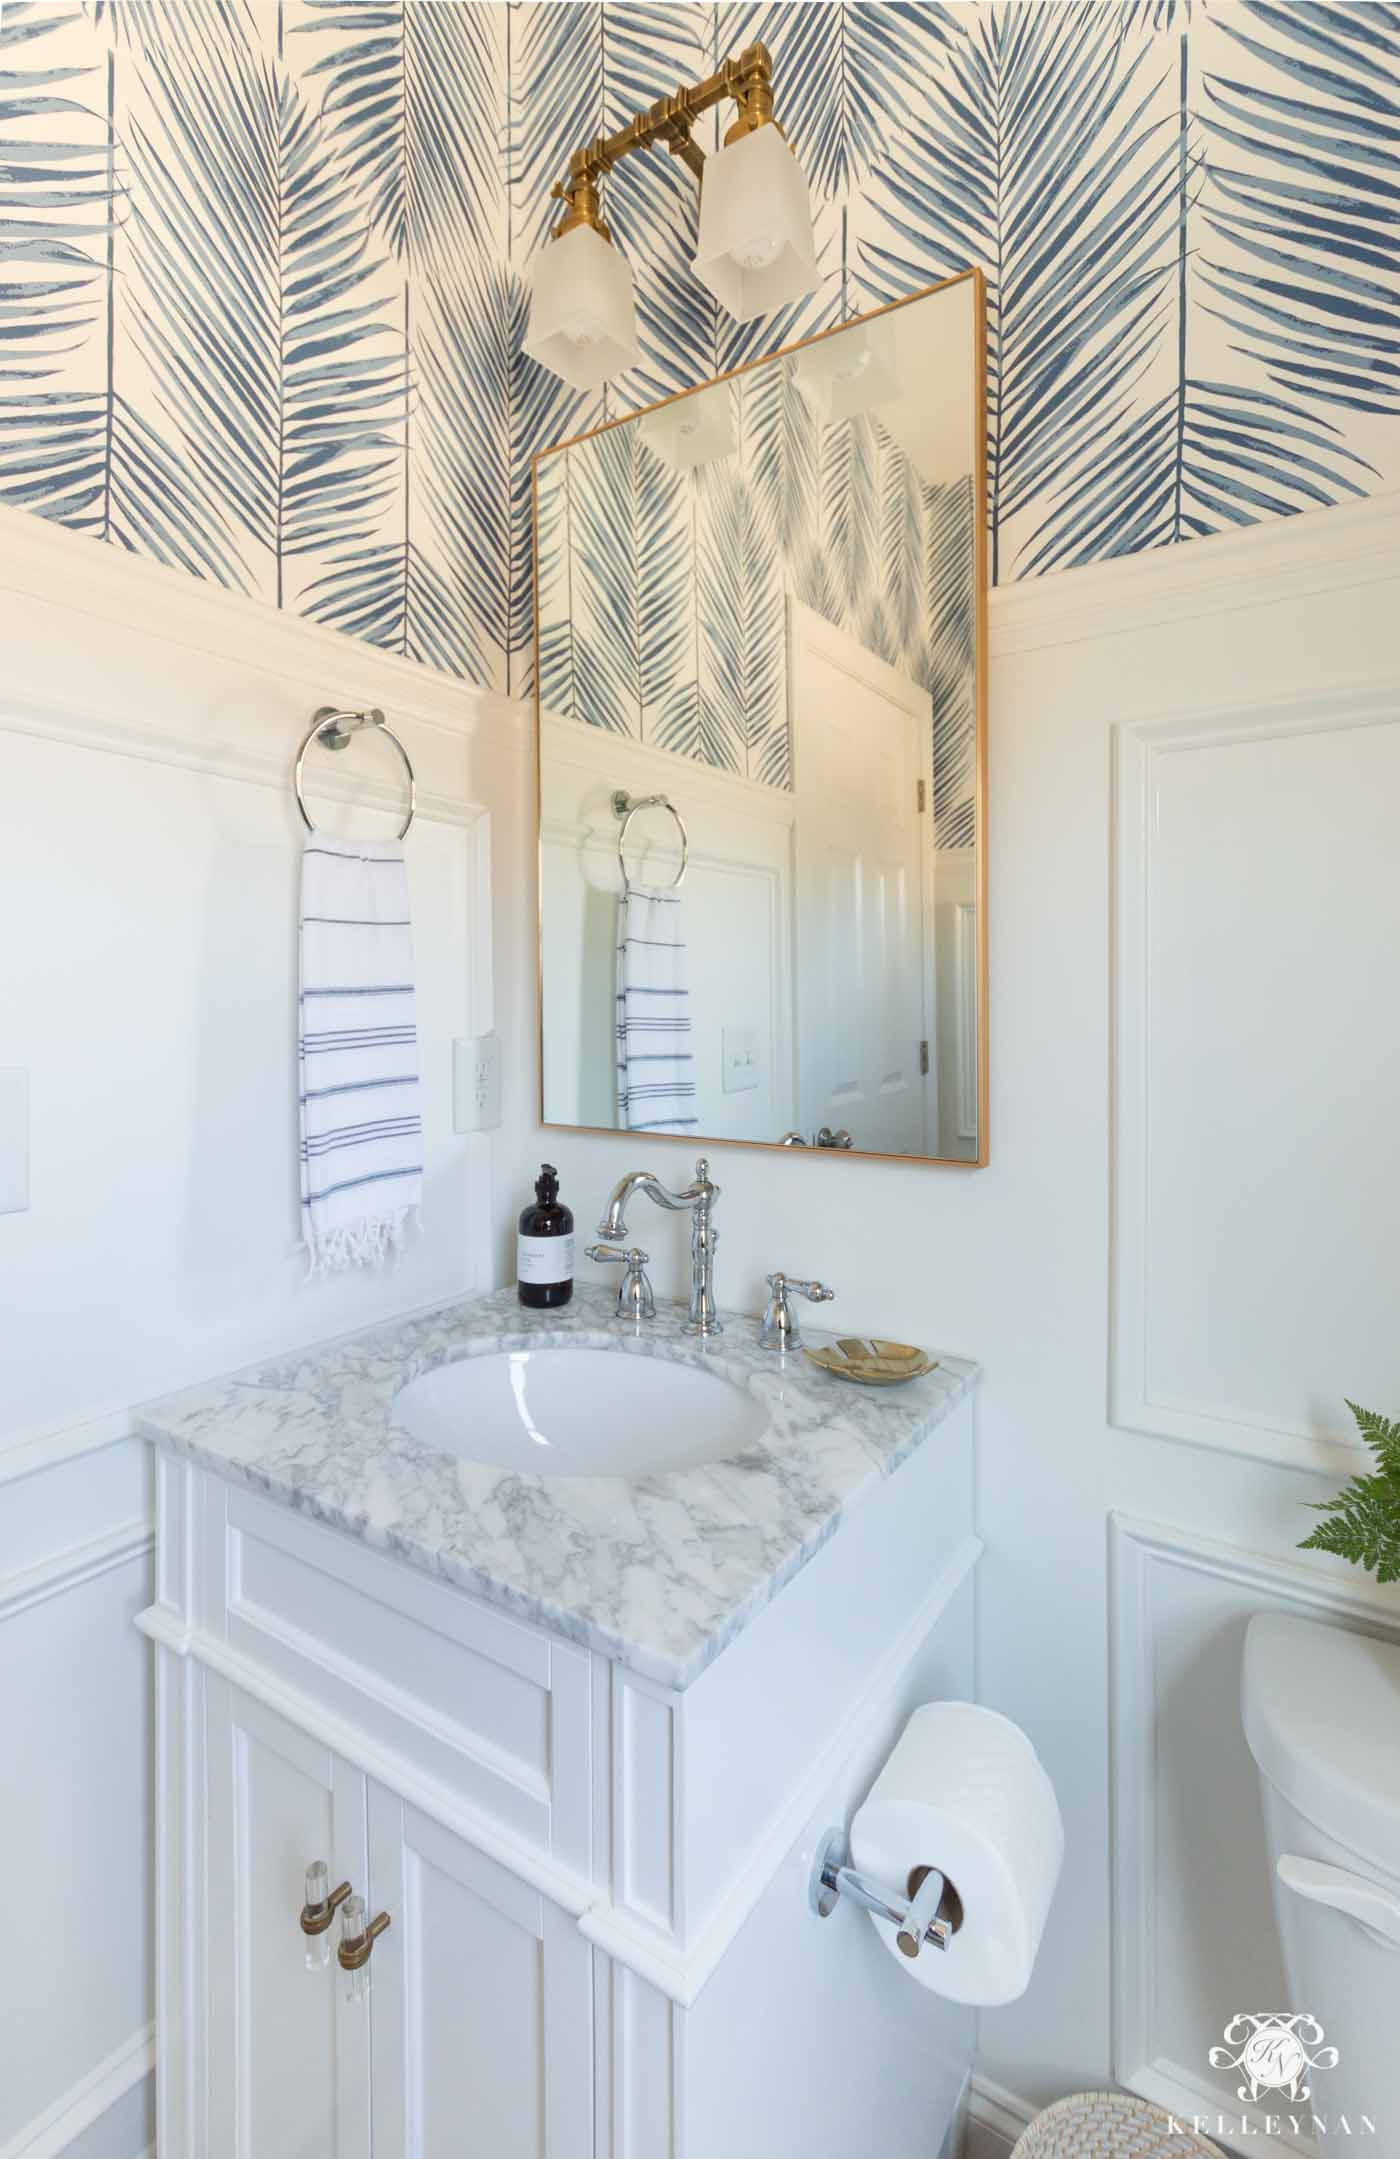 Modern Coastal Powder Room Design and Small Bathroom Decor Ideas